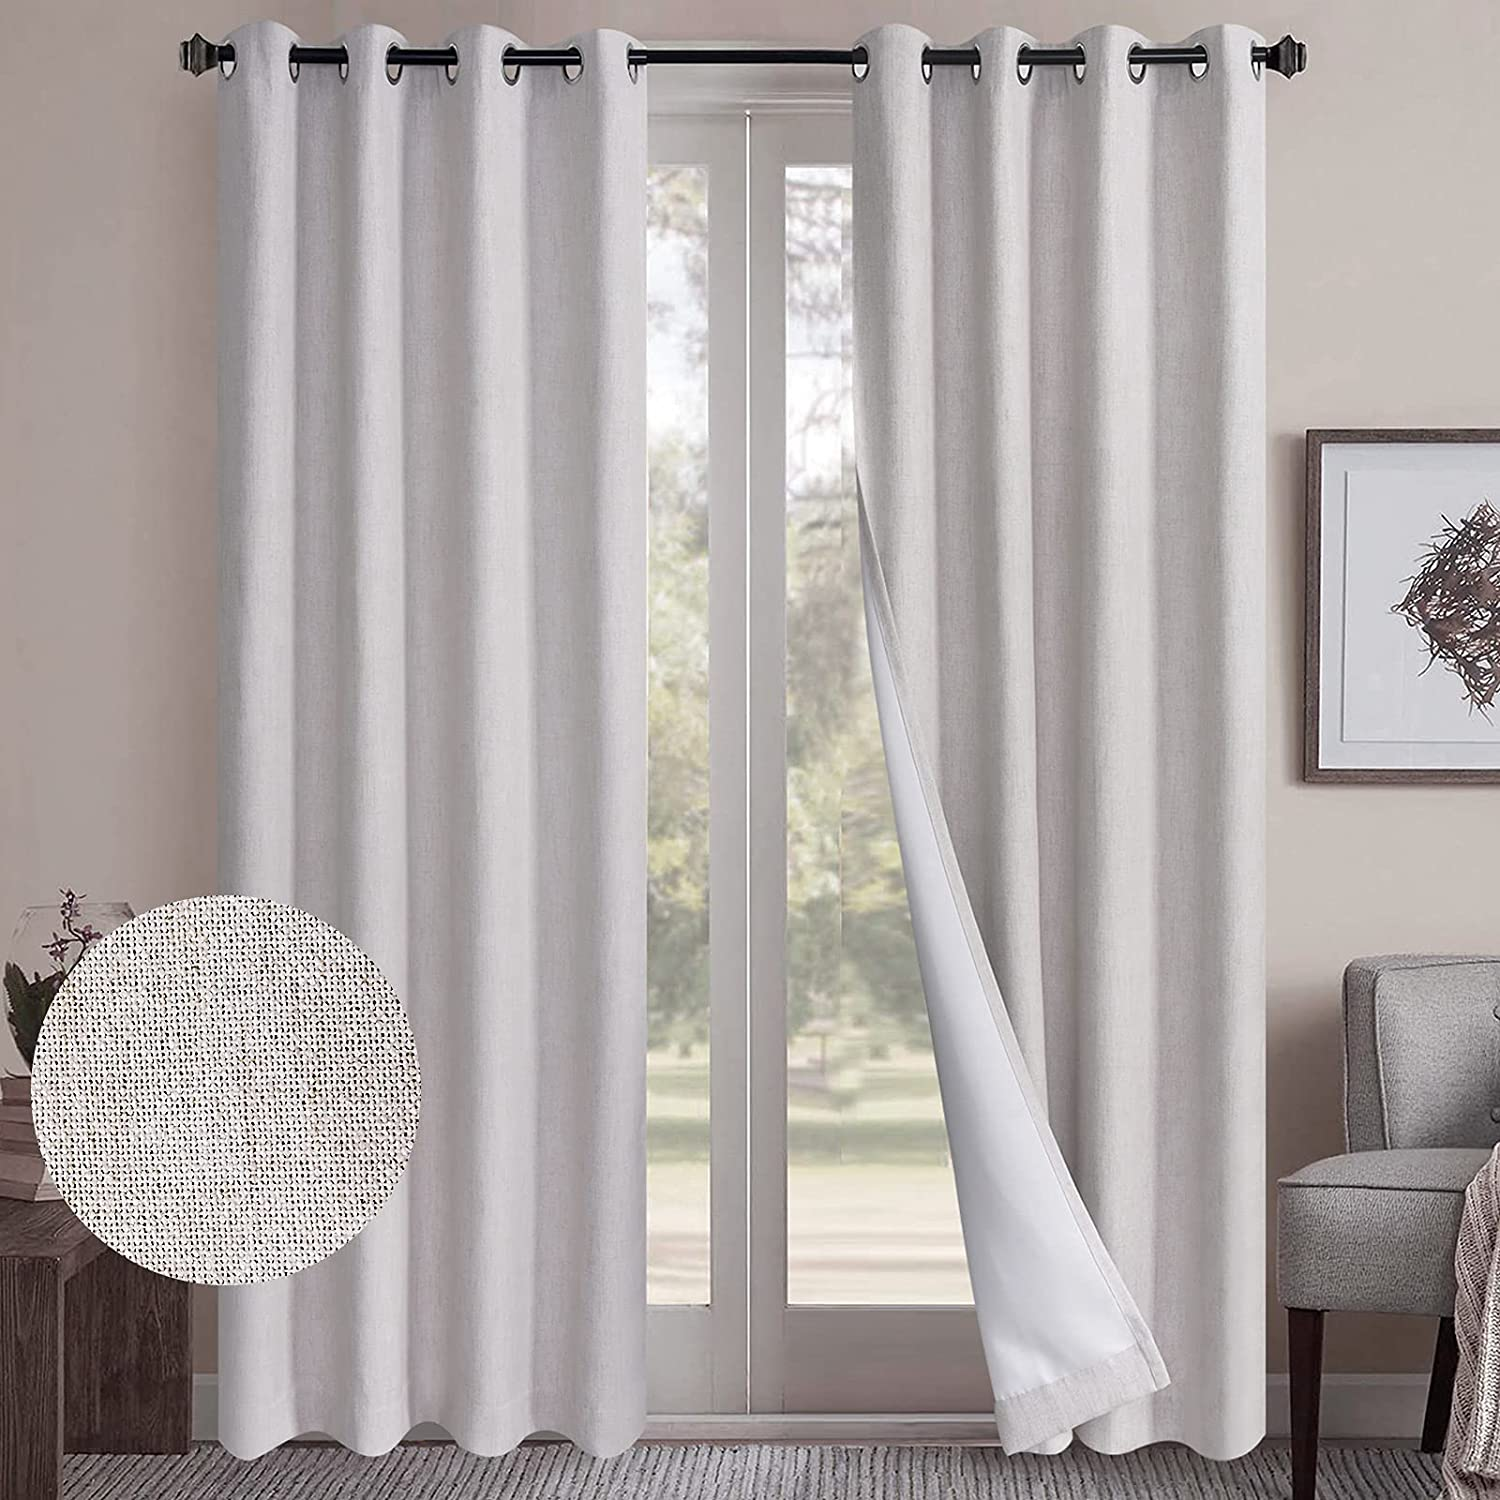 Rose Home Fashion Linen Blackout Curtains, Set of 2 Panels Room Darkening Curtains Grommet Curtains Drapes for Bedroom/Living Room 84 inch Length - (50W by 84L, Beige)